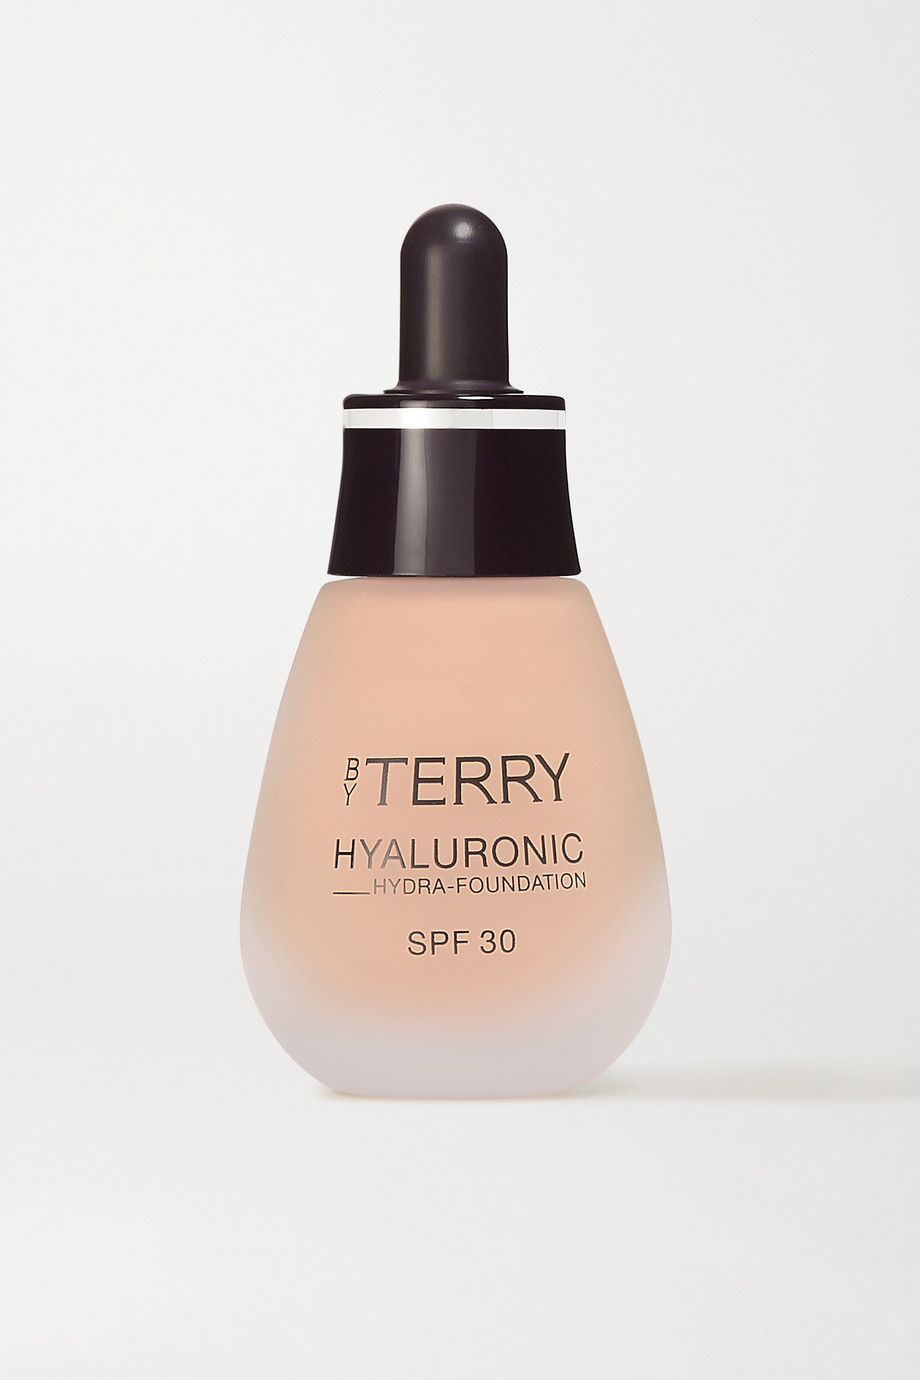 BY TERRY Fond de teint liquide soin perfection Hyaluronic Hydra-Foundation SPF 30, 400C